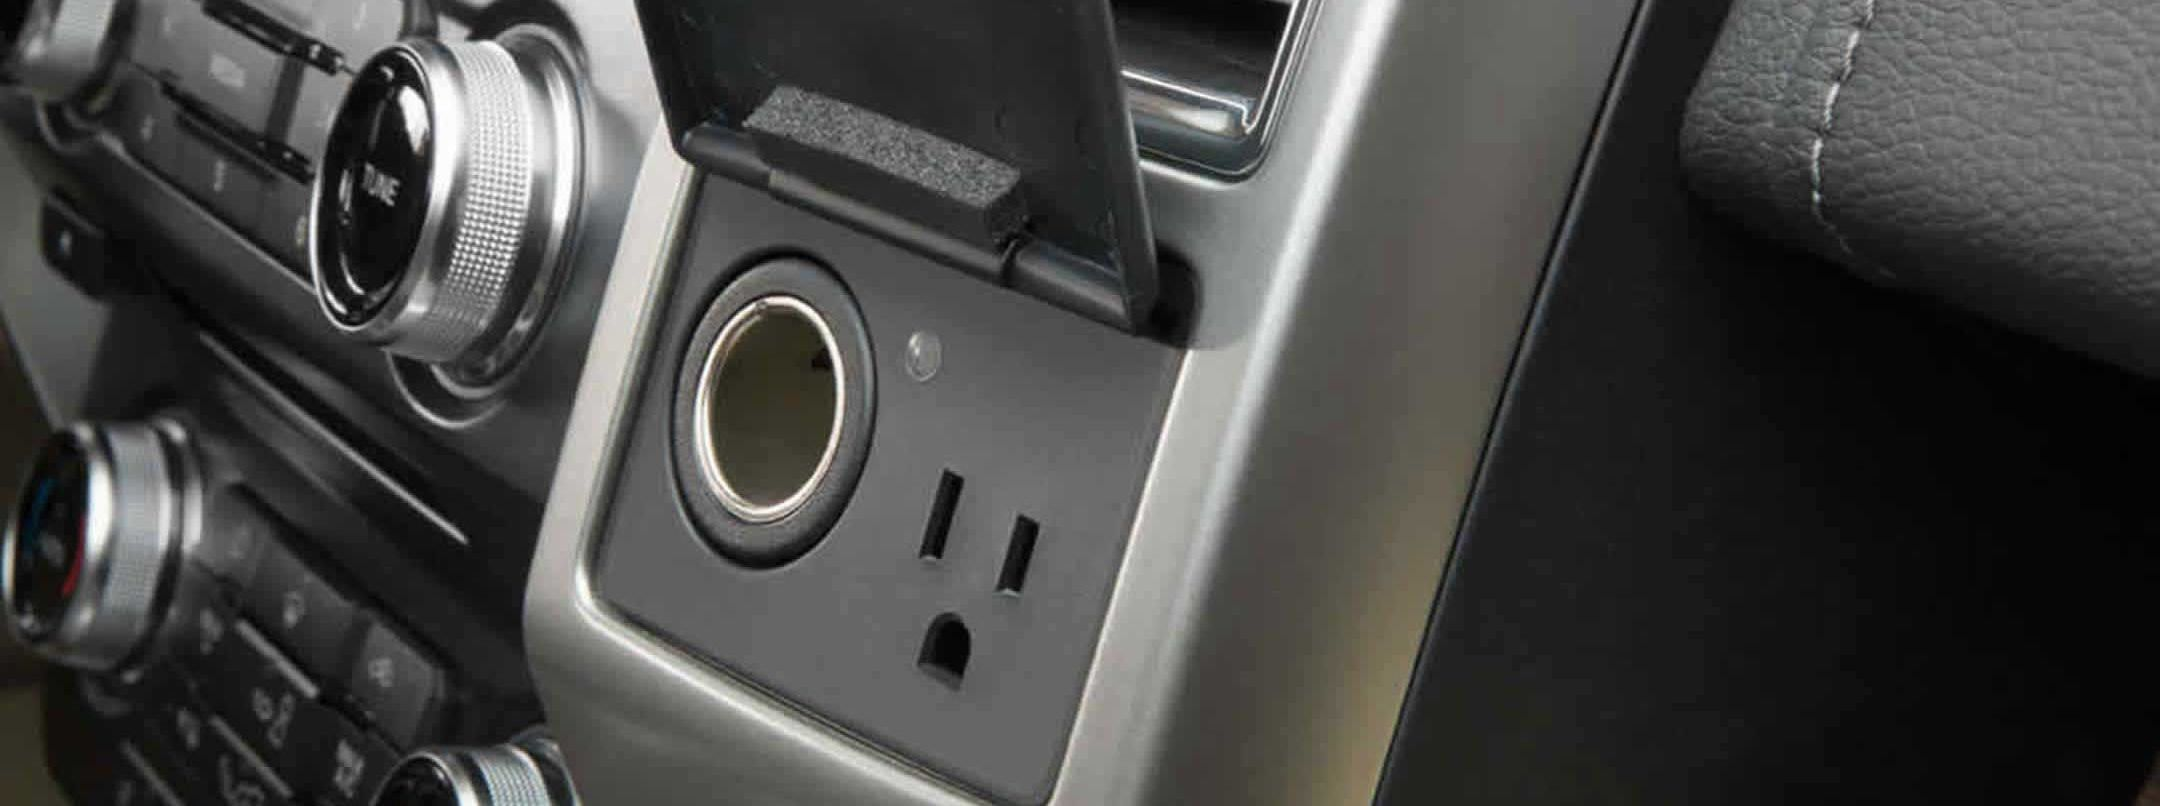 12-volt Power Outlet Equipped within the 2017 F-150